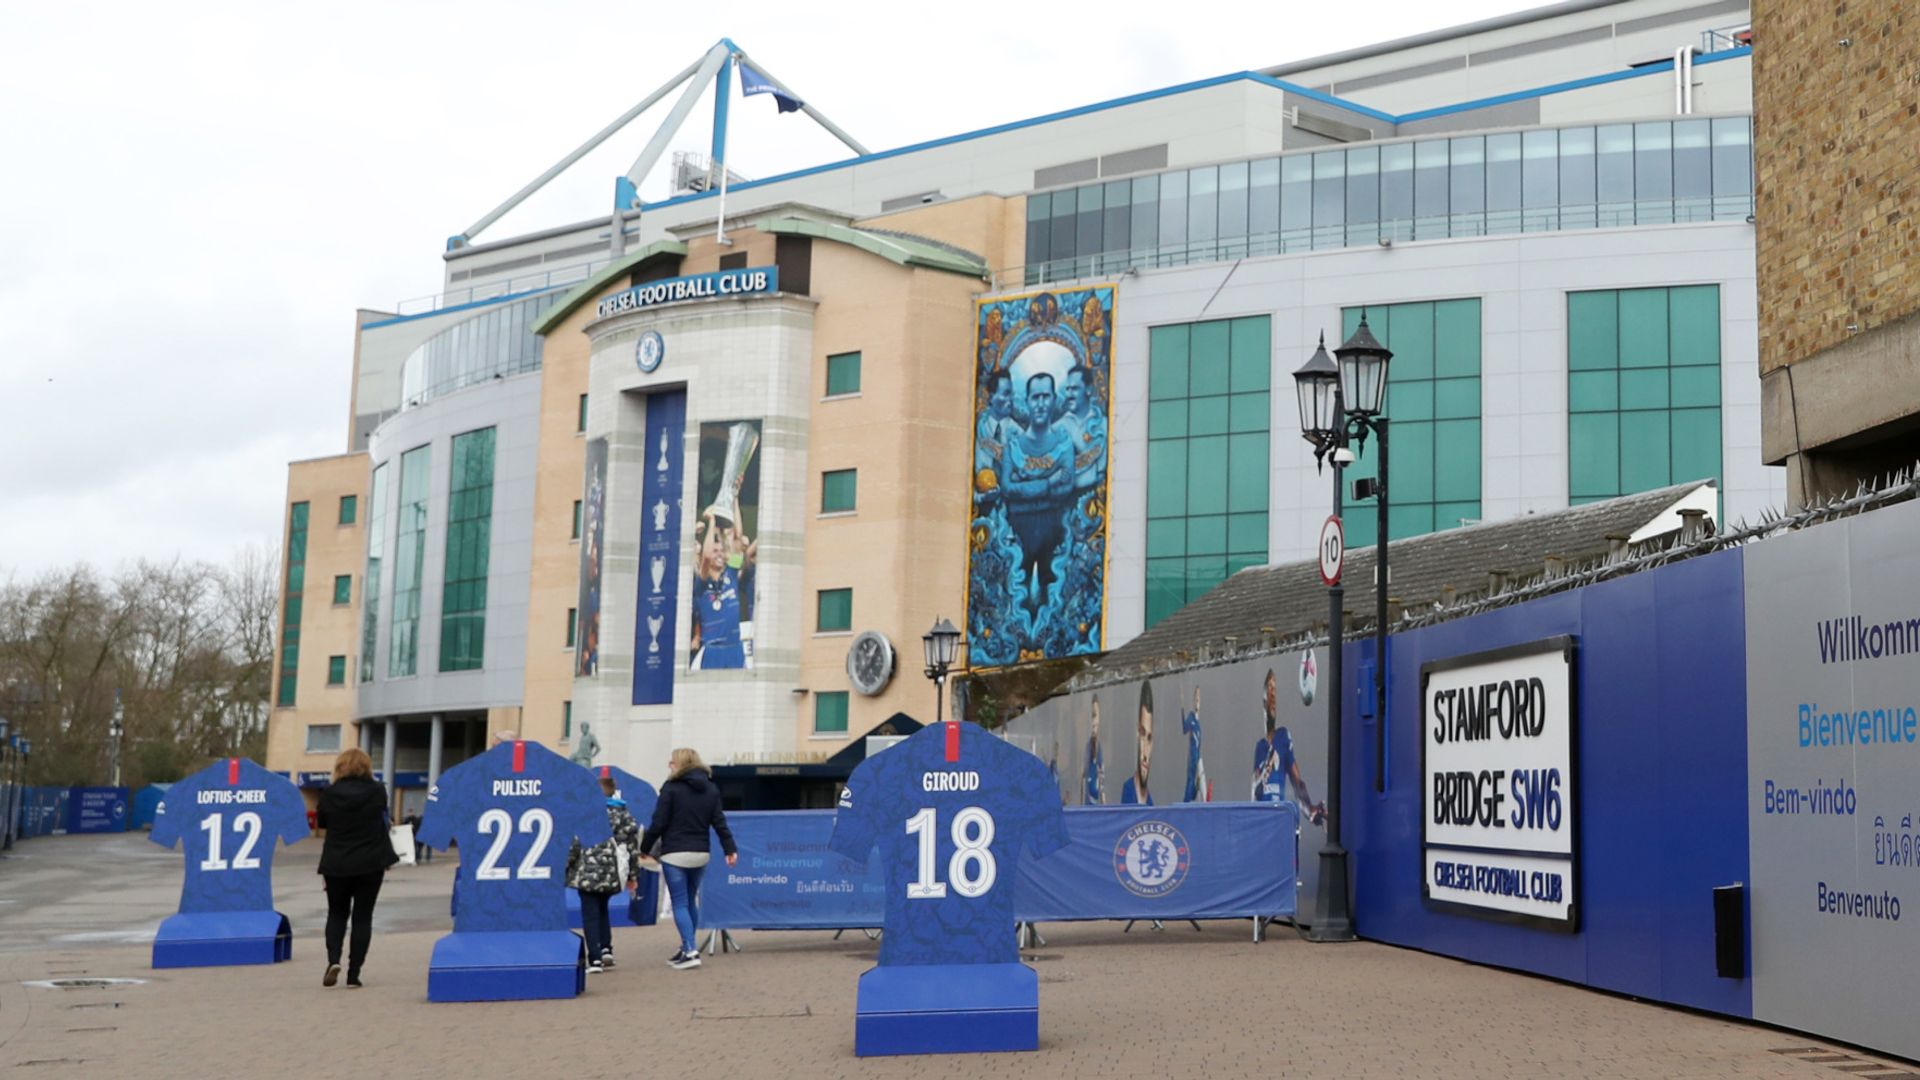 FA takes FIFA to court over Chelsea transfer ban